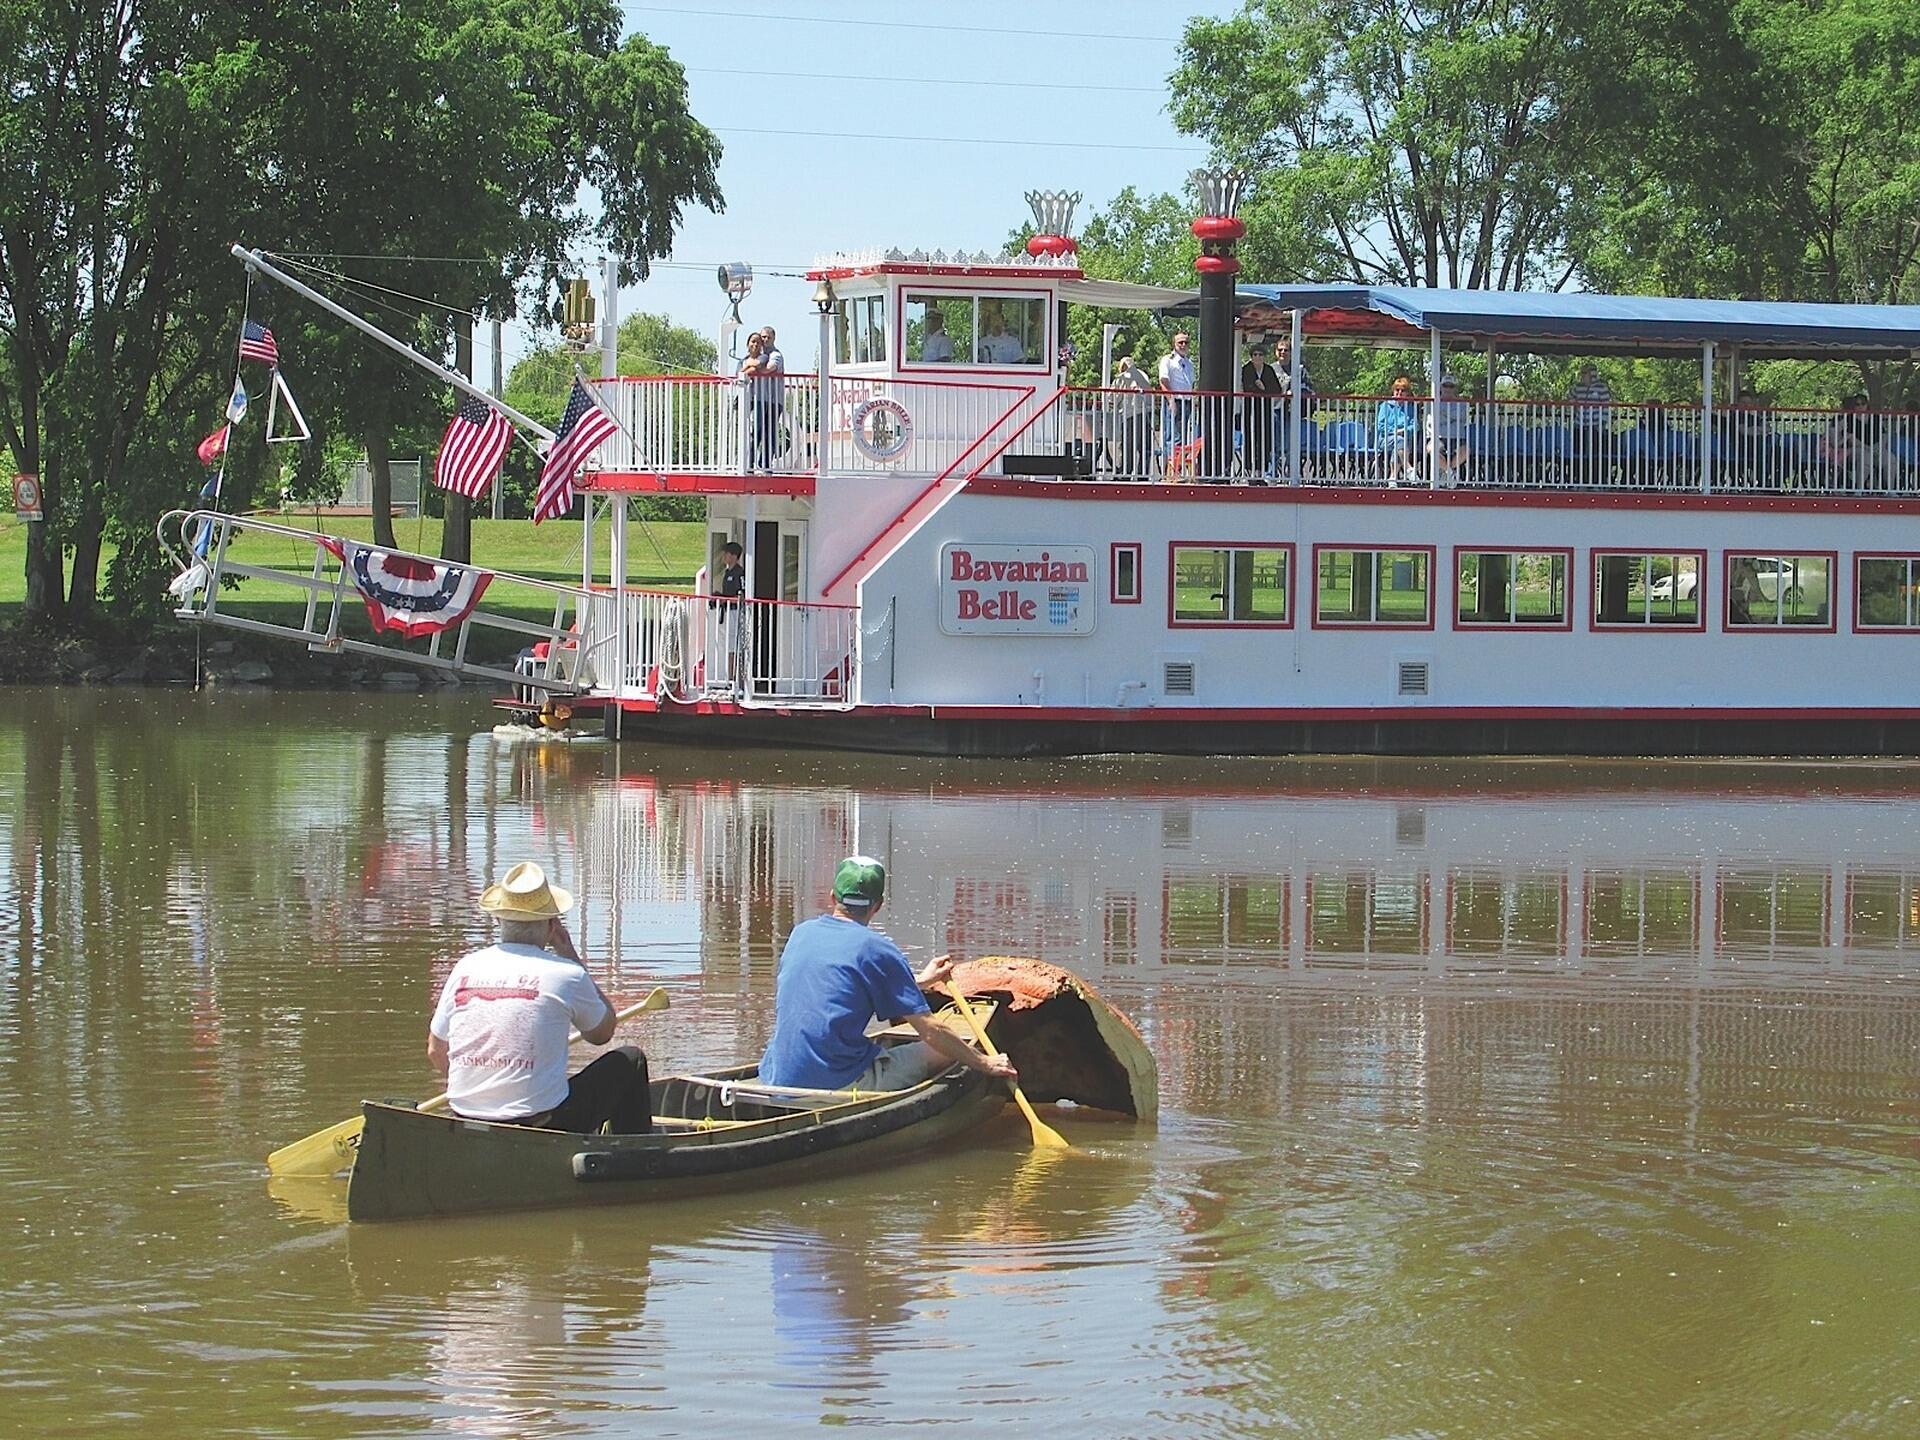 2 people riding a boat at Bavarian Belle Riverboat Tours